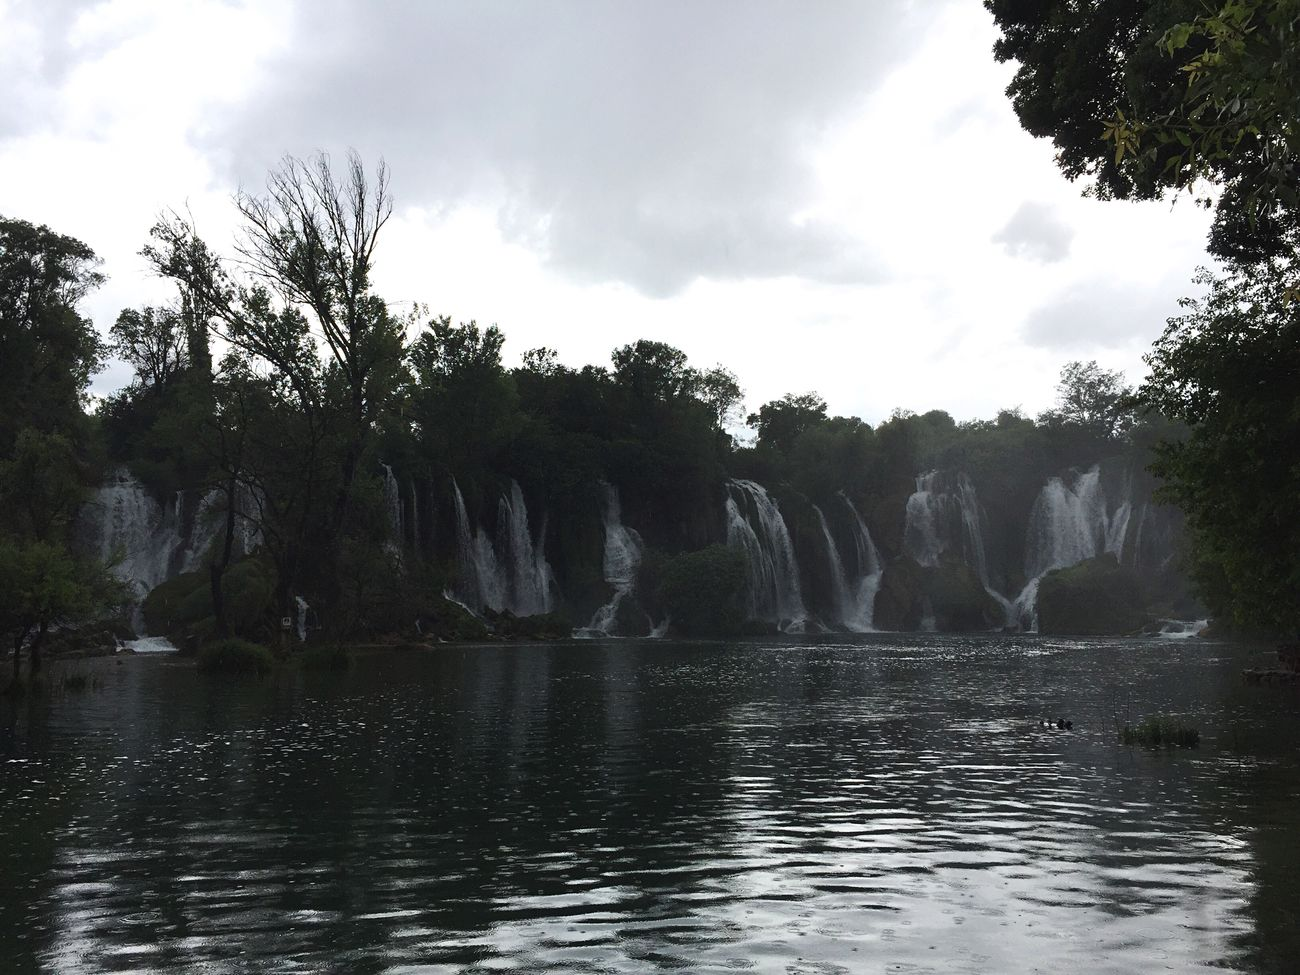 Kravica waterfalls in Bosnia is beautiful. It started raining but the rain didn't last long. A gem in a country that has suffered so much. Waterfall Beauty In Nature Kravica, Bosnia & Herzegovina